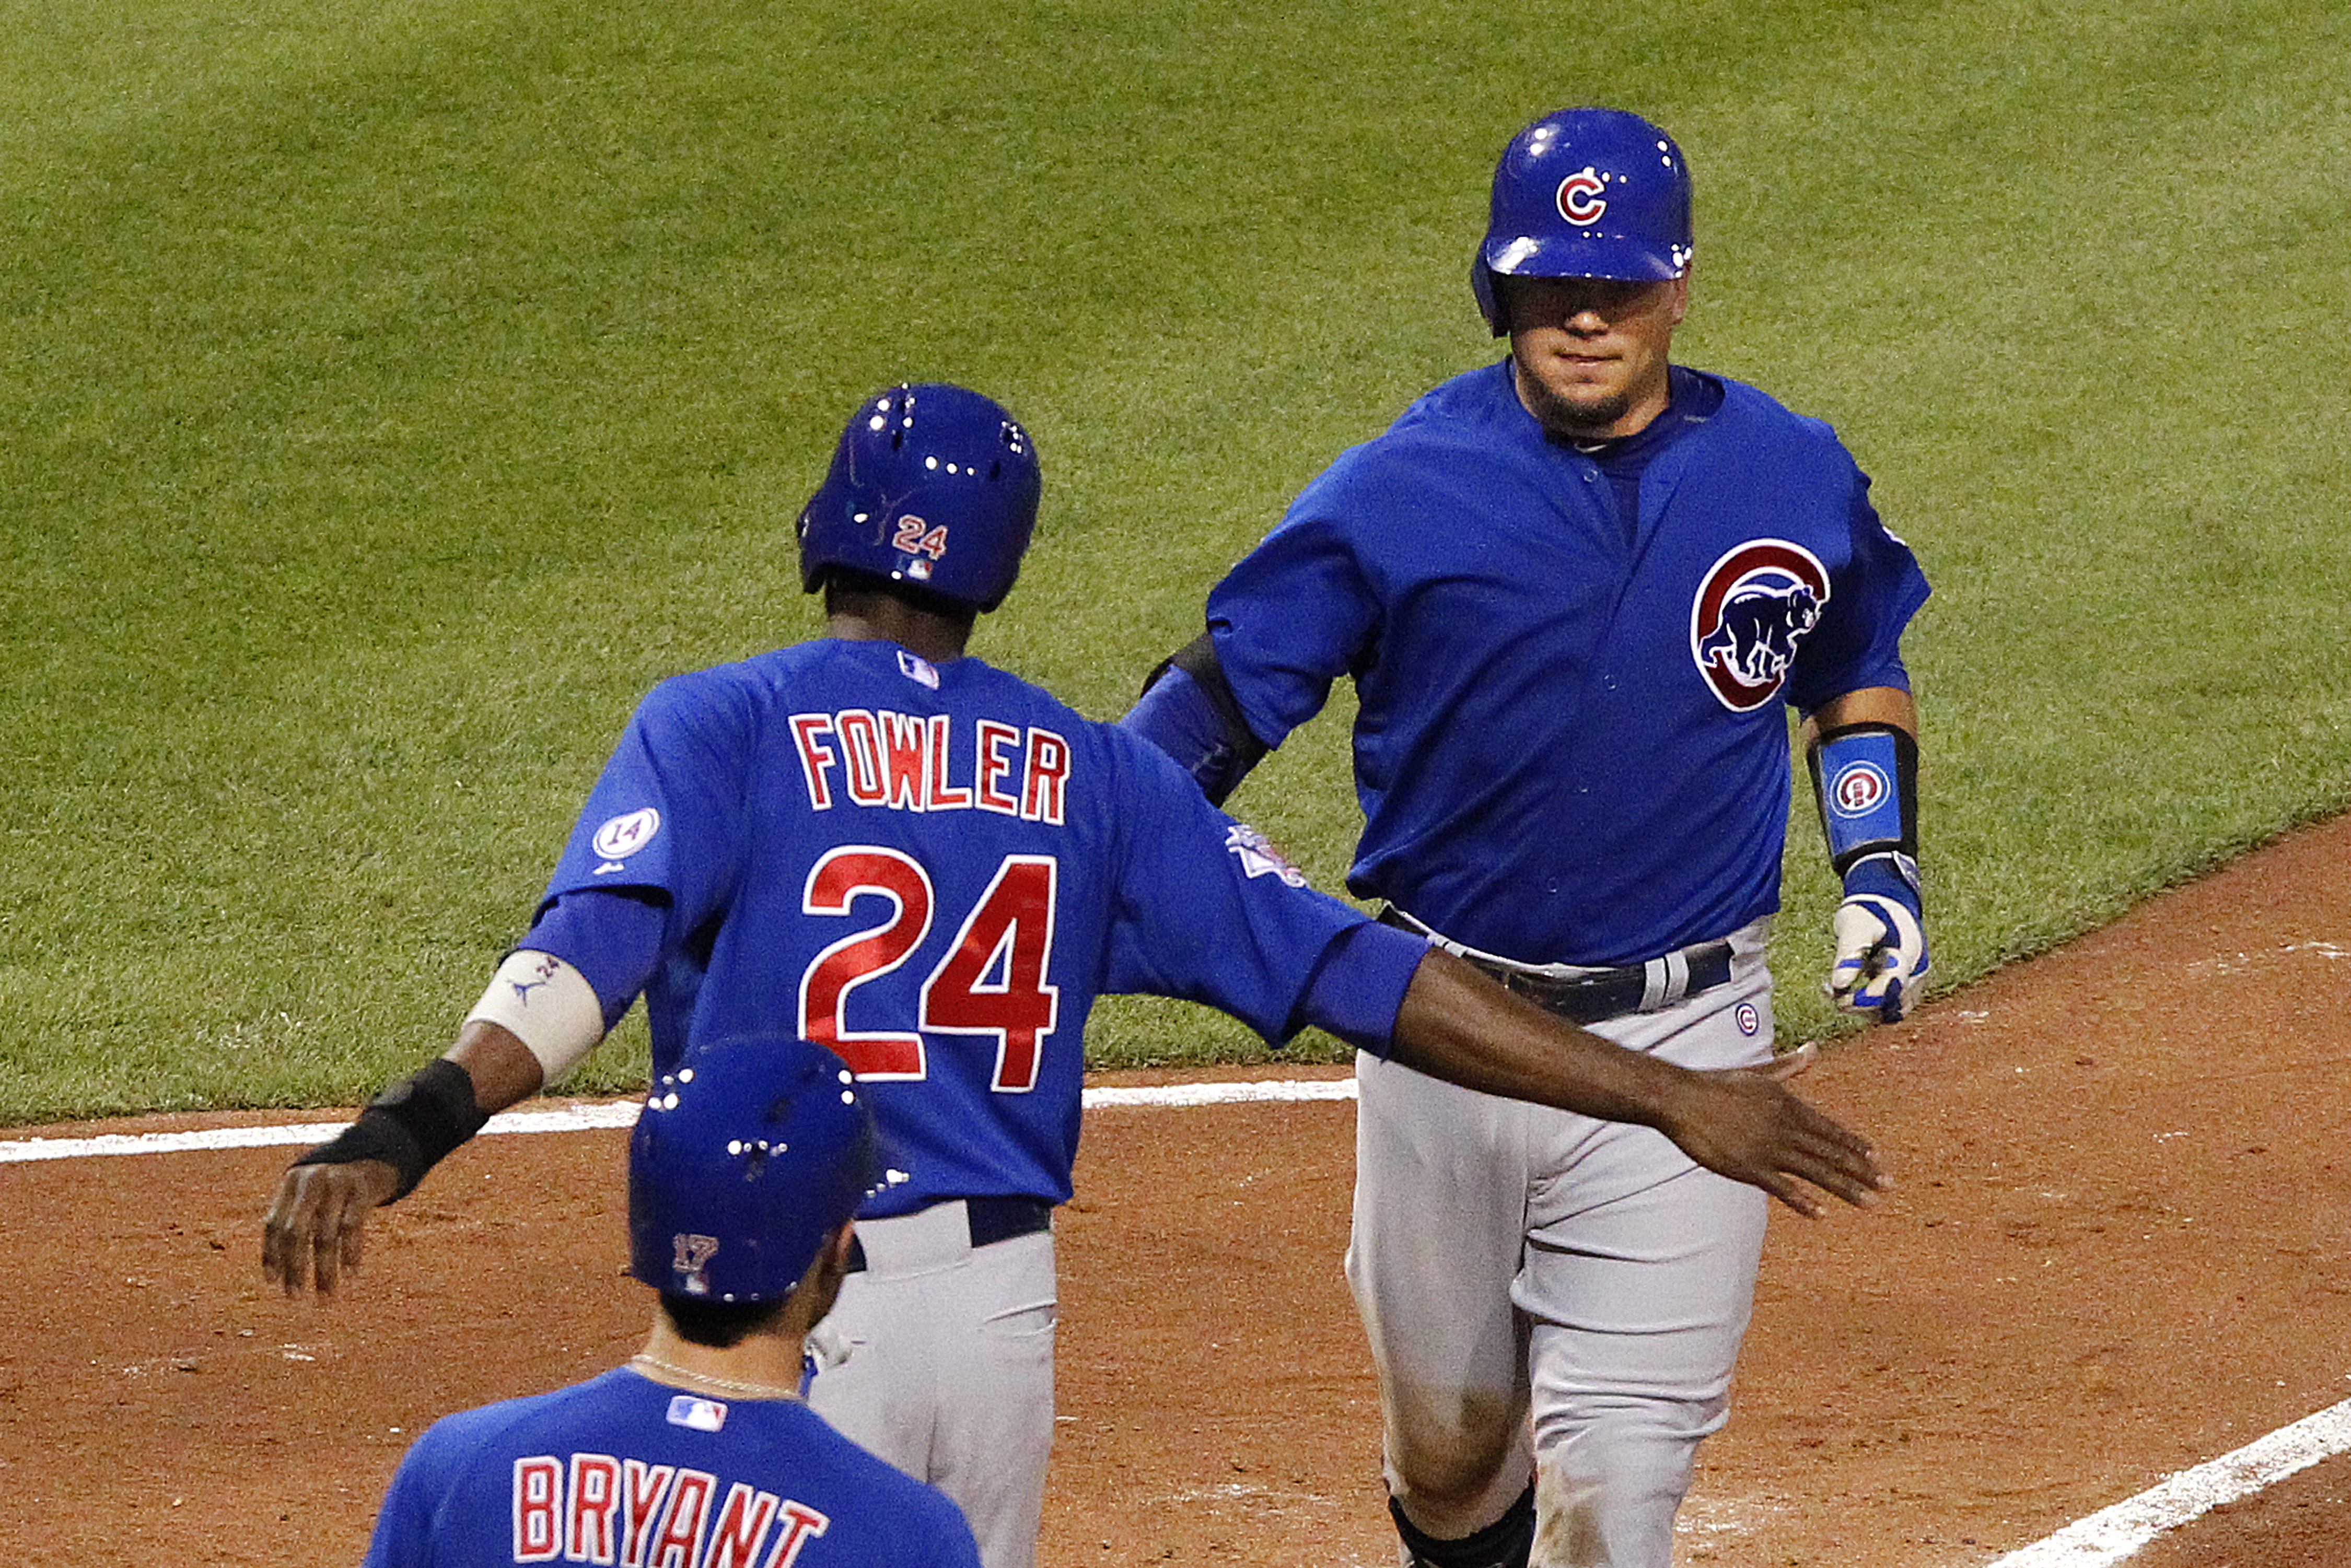 Chicago Cubs' Kyle Schwarber, right, is greeted by teammate Dexter Fowler (24)  after hitting a two-run home run off Pittsburgh Pirates starting pitcher Jeff Locke in the sixth inning of a baseball game against the Pittsburgh Pirates, Wednesday, Aug. 5, 2